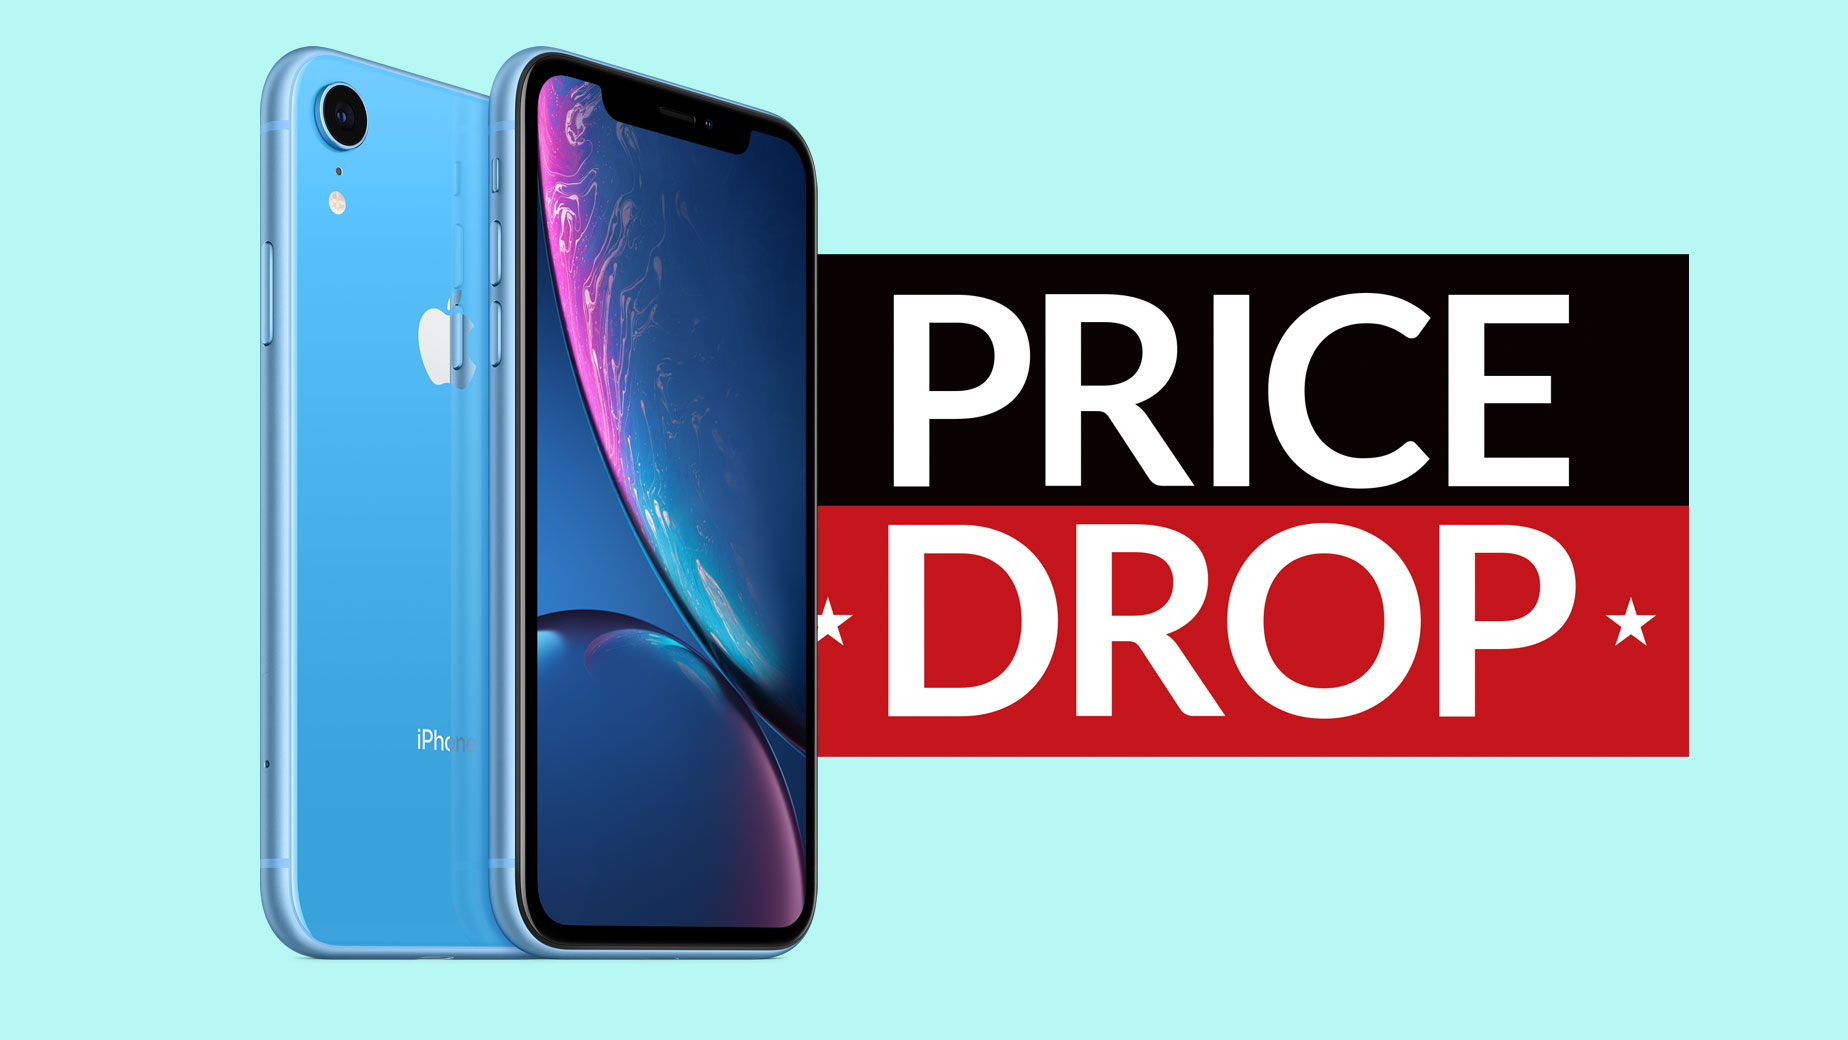 Black Friday Comes Early With This Iphone Xr Price Drop From Carphone Warehouse Including Free Apple Tv Subscription T3